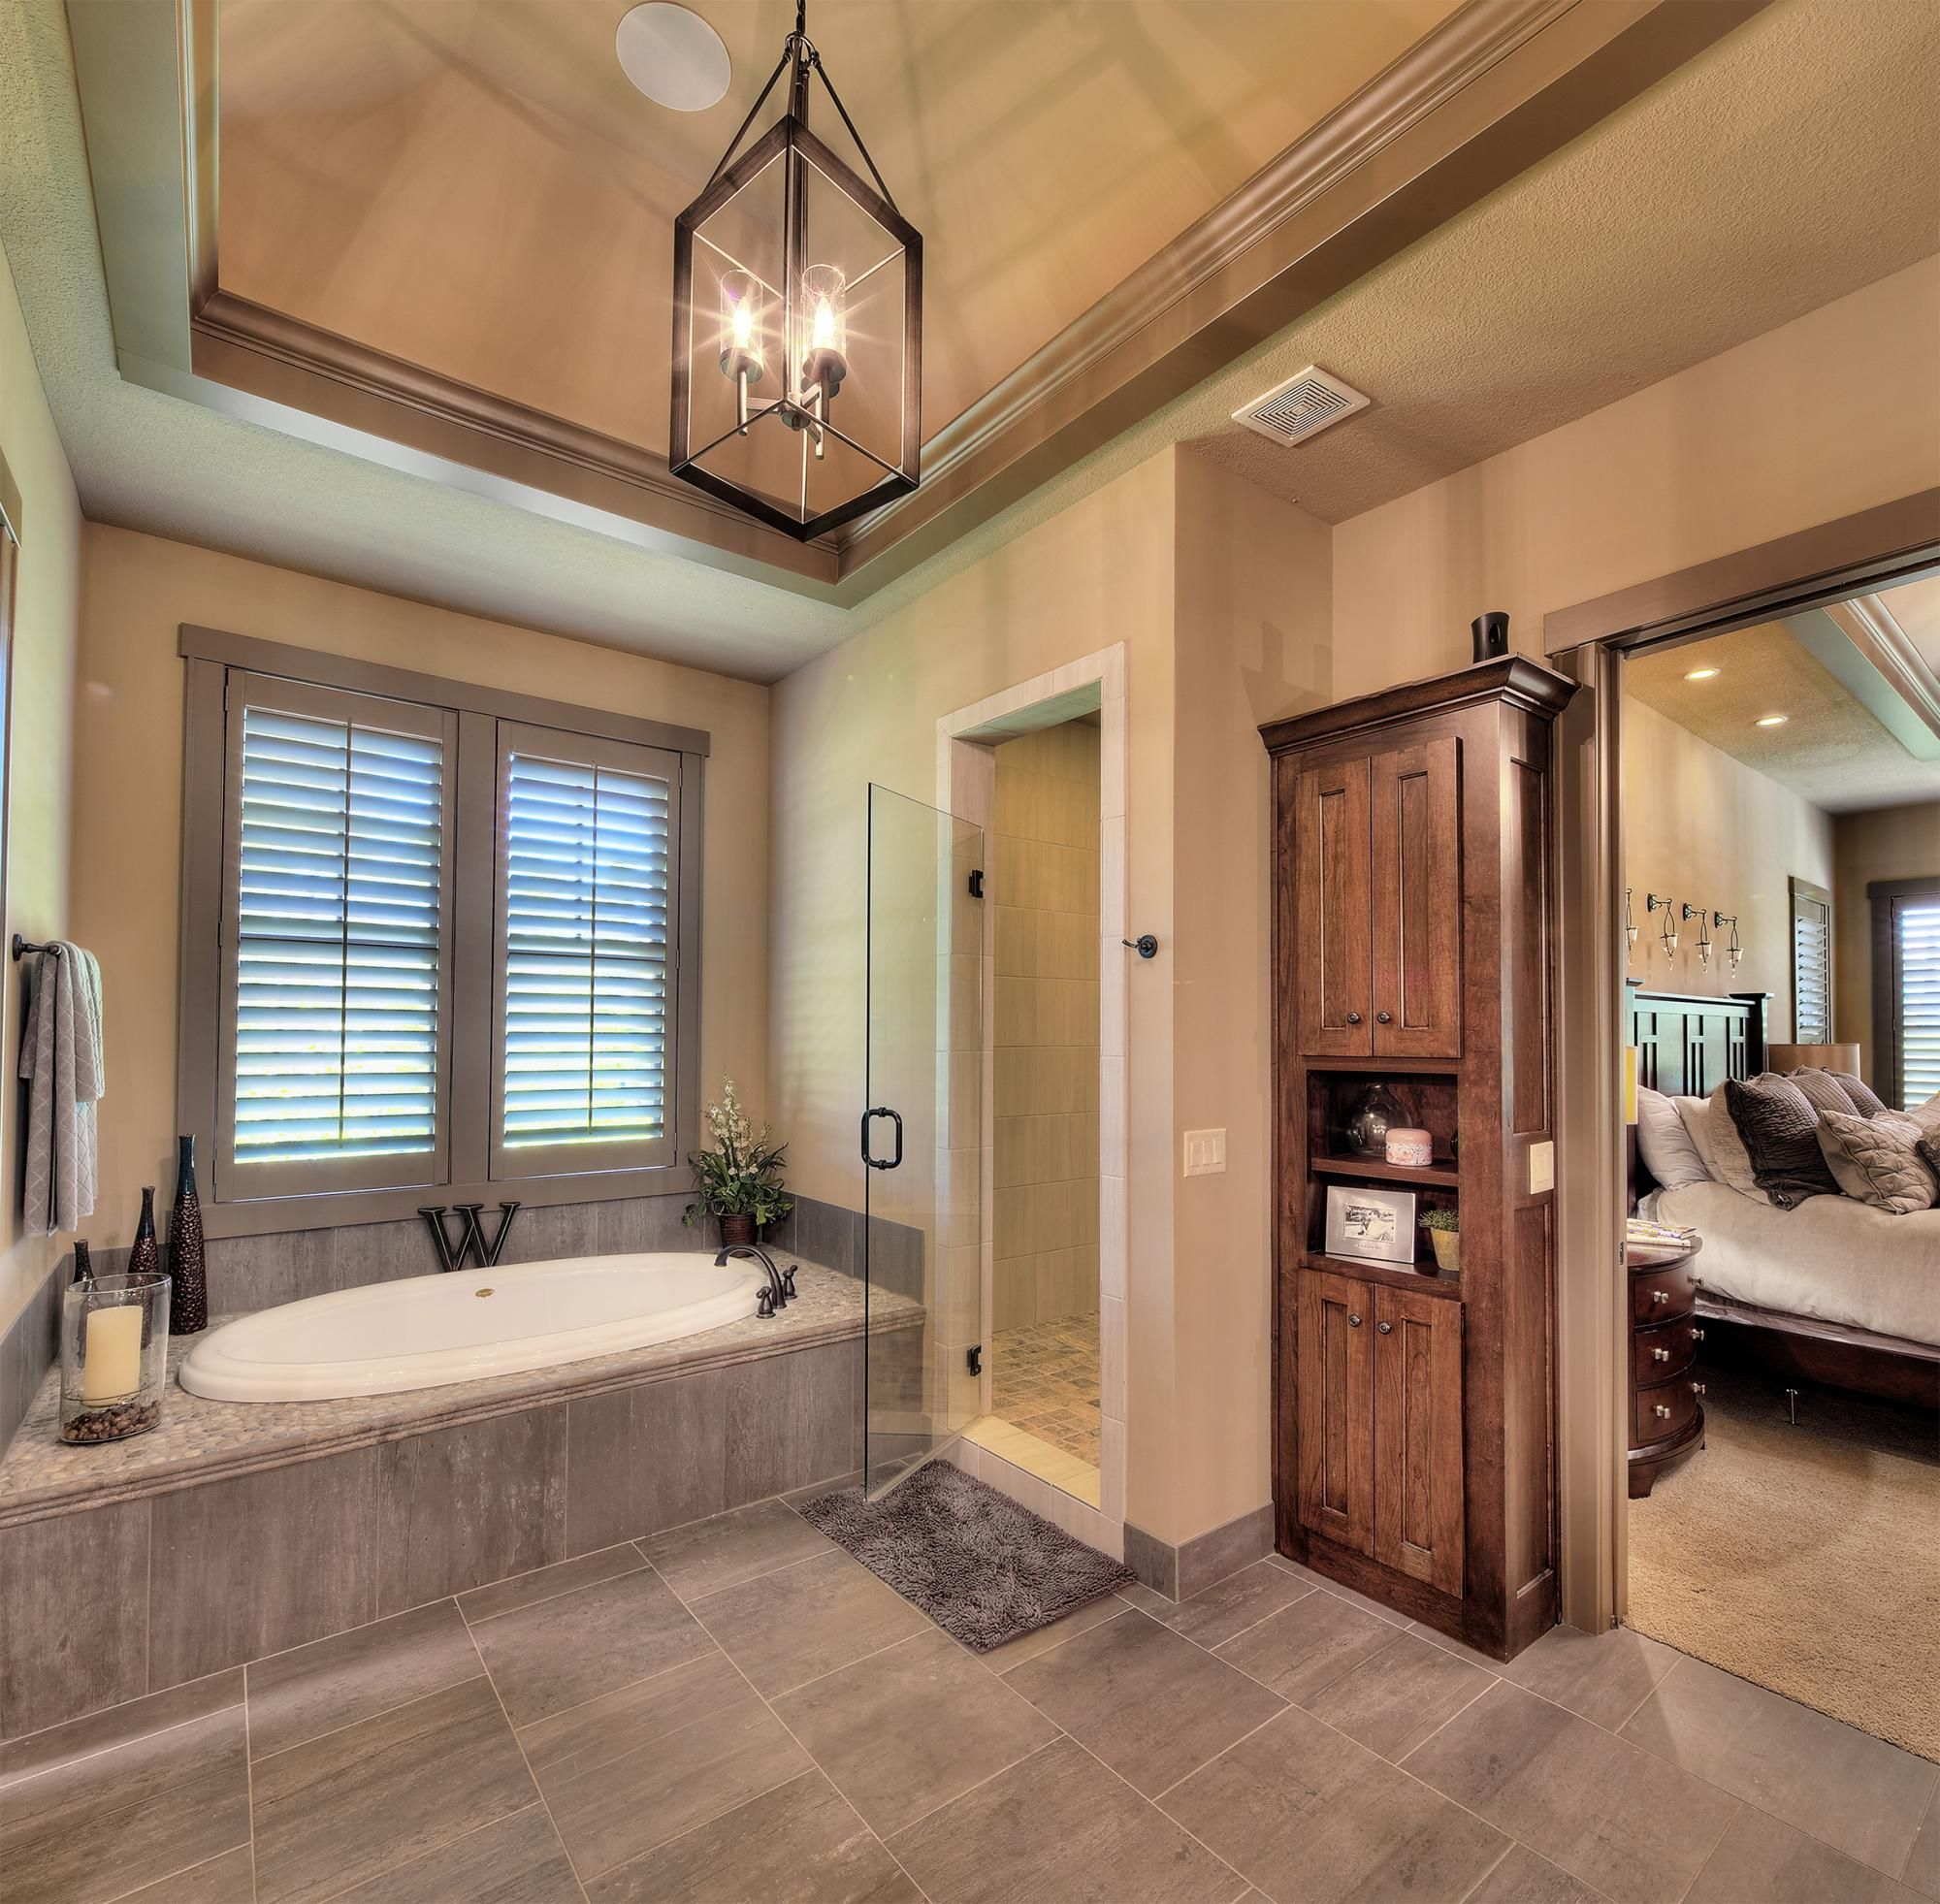 Bathrooms Photo Gallery | Custom Homes in Kansas City KS ...